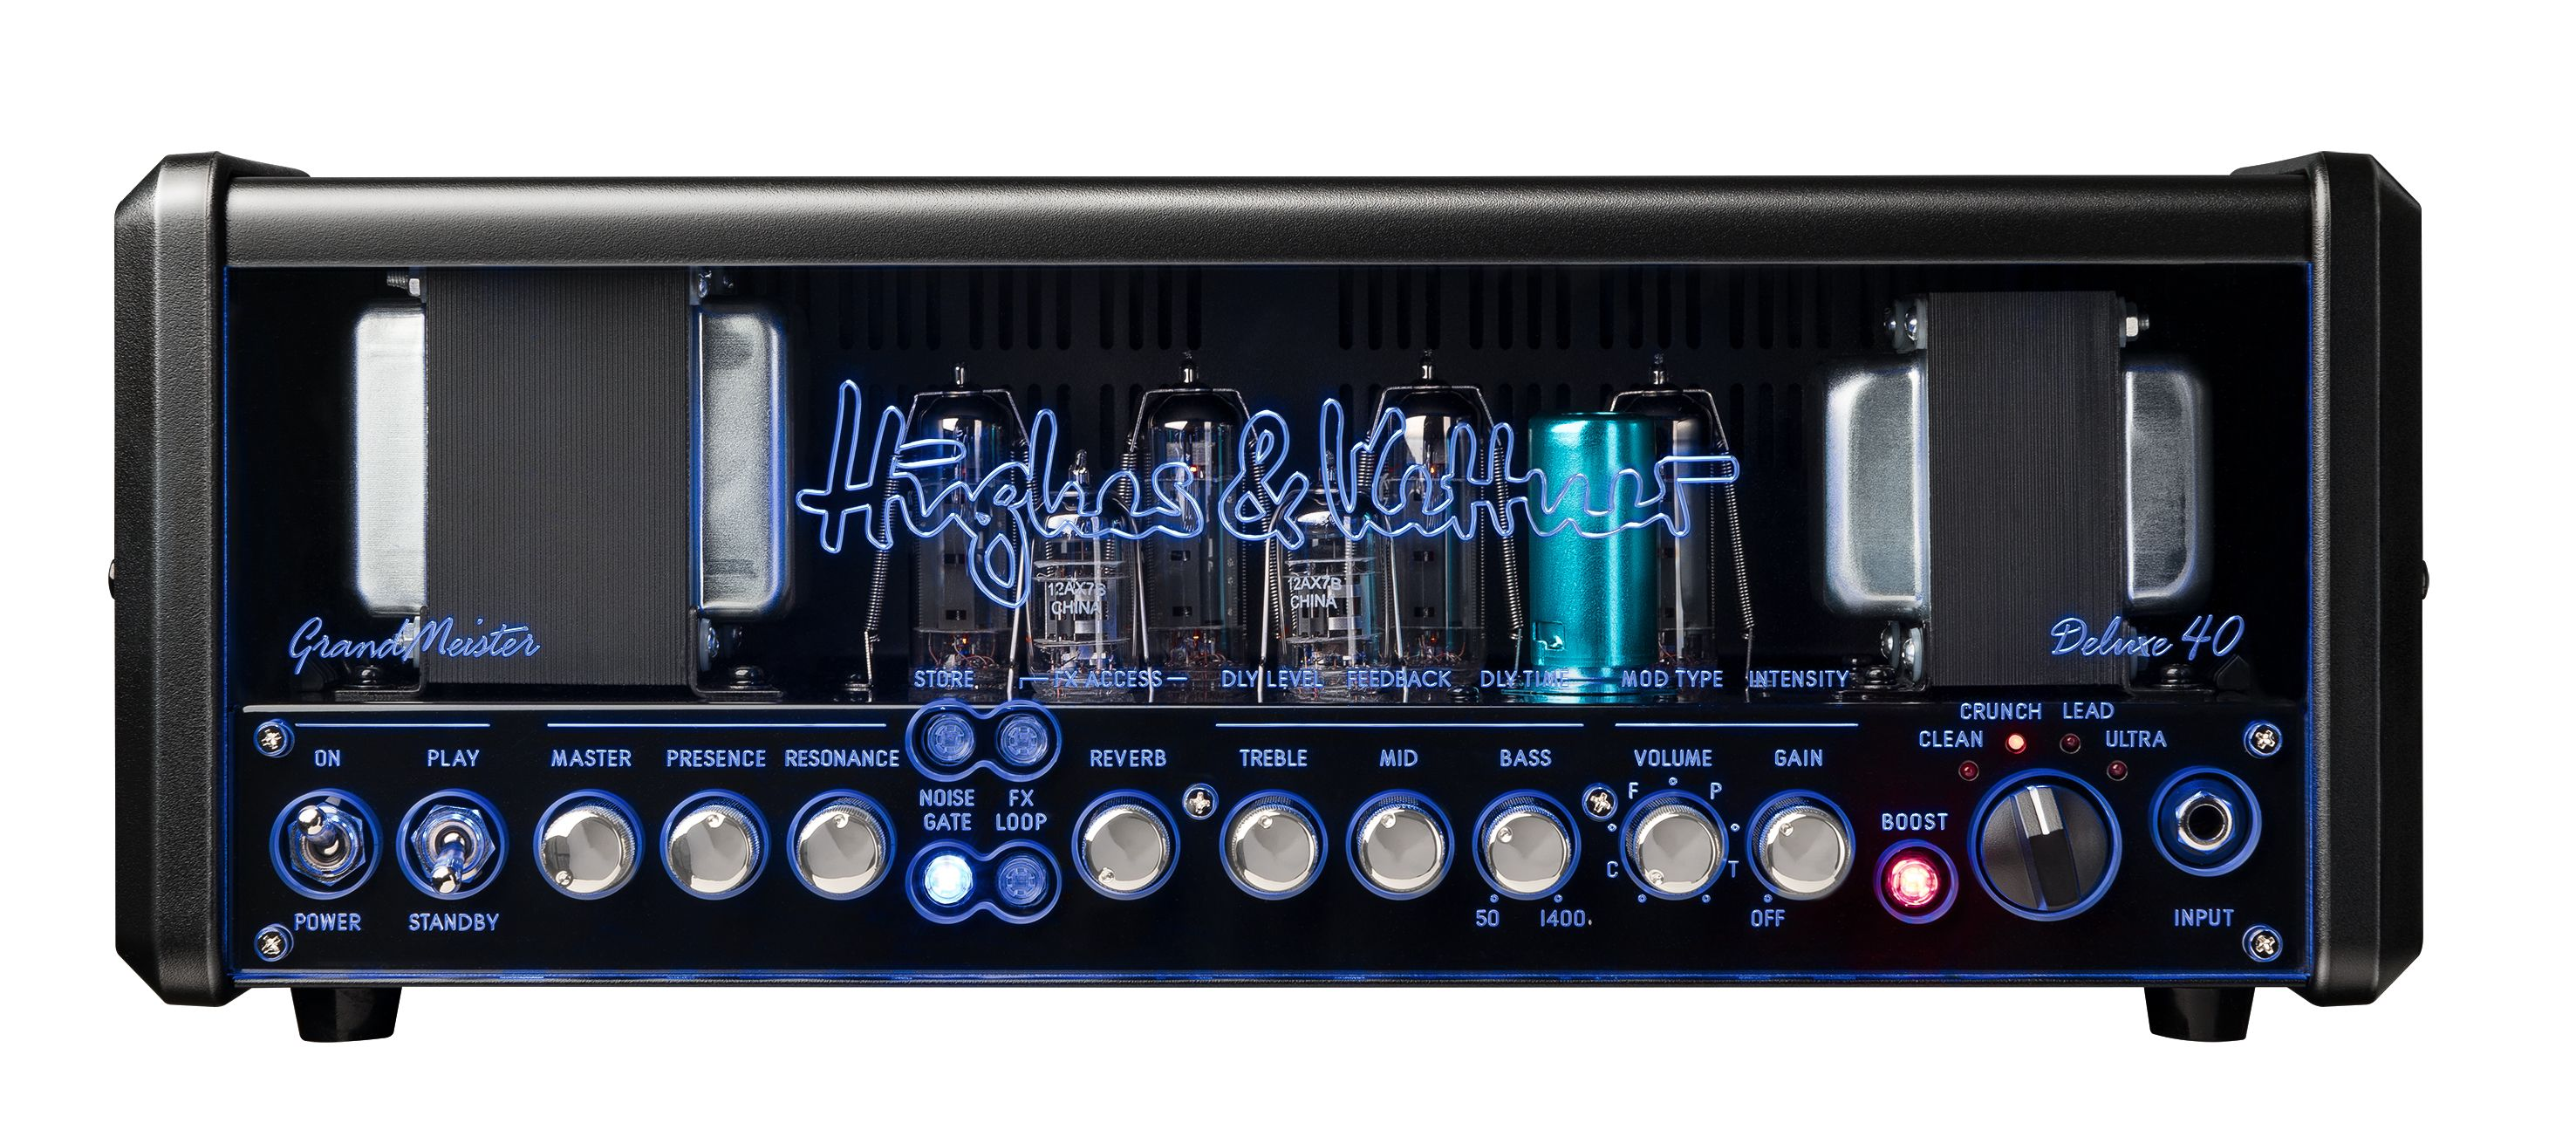 The Front Panel Of Grandmeister Deluxe 40 Find Out More Here Http Hughes And Kettner Com Products Grandmeister Grandmeister Deluxe 40 Hughesandkettner A